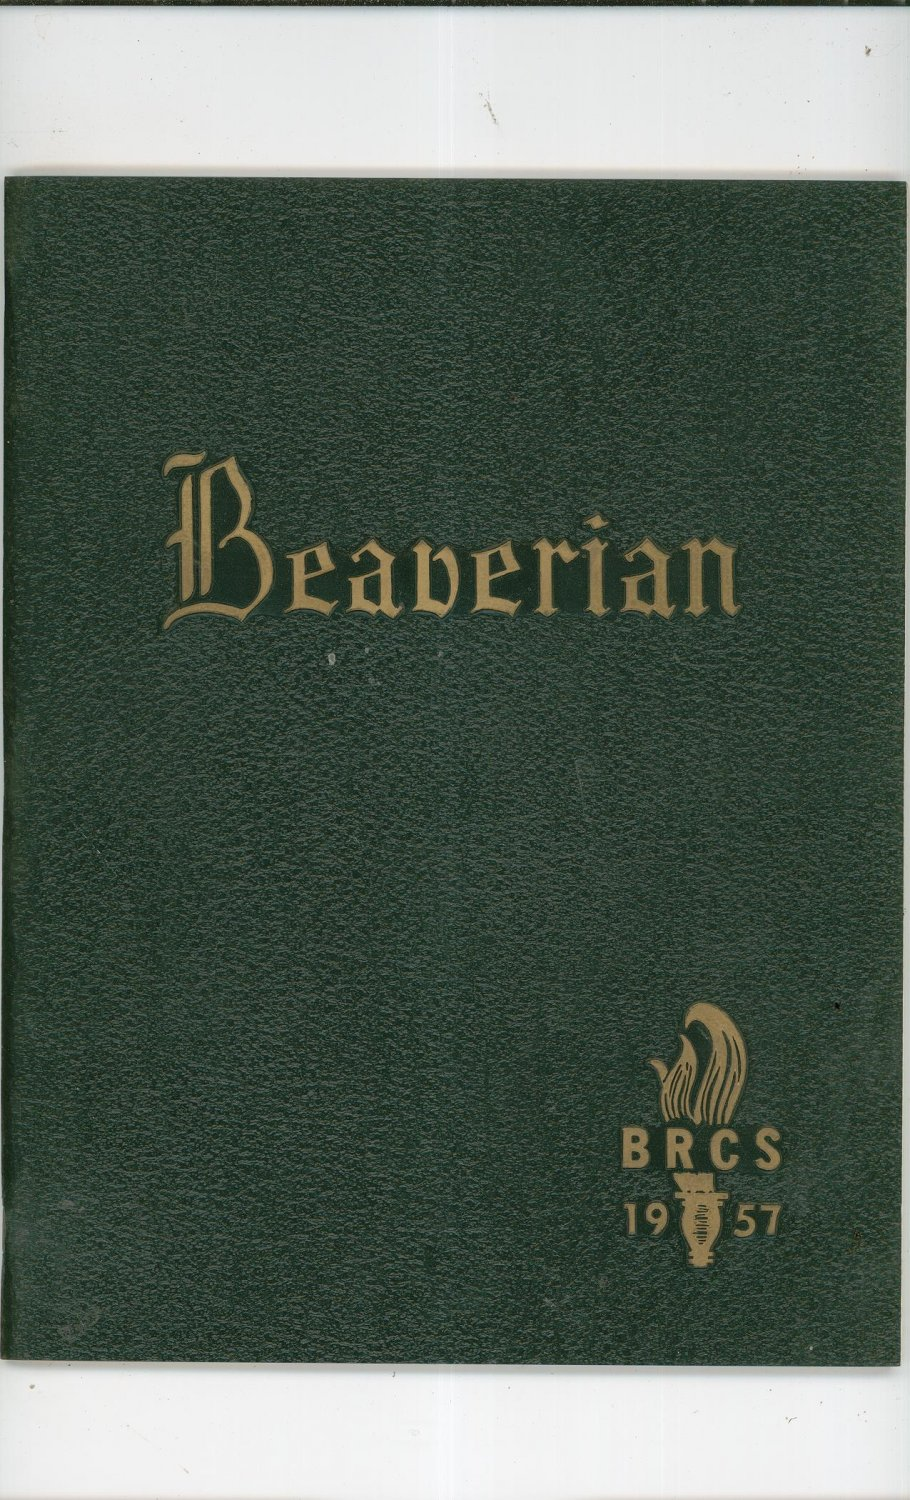 The Beaverian 1957 Year Book Yearbook Beaver River Central School Beaver Falls New York Vintage